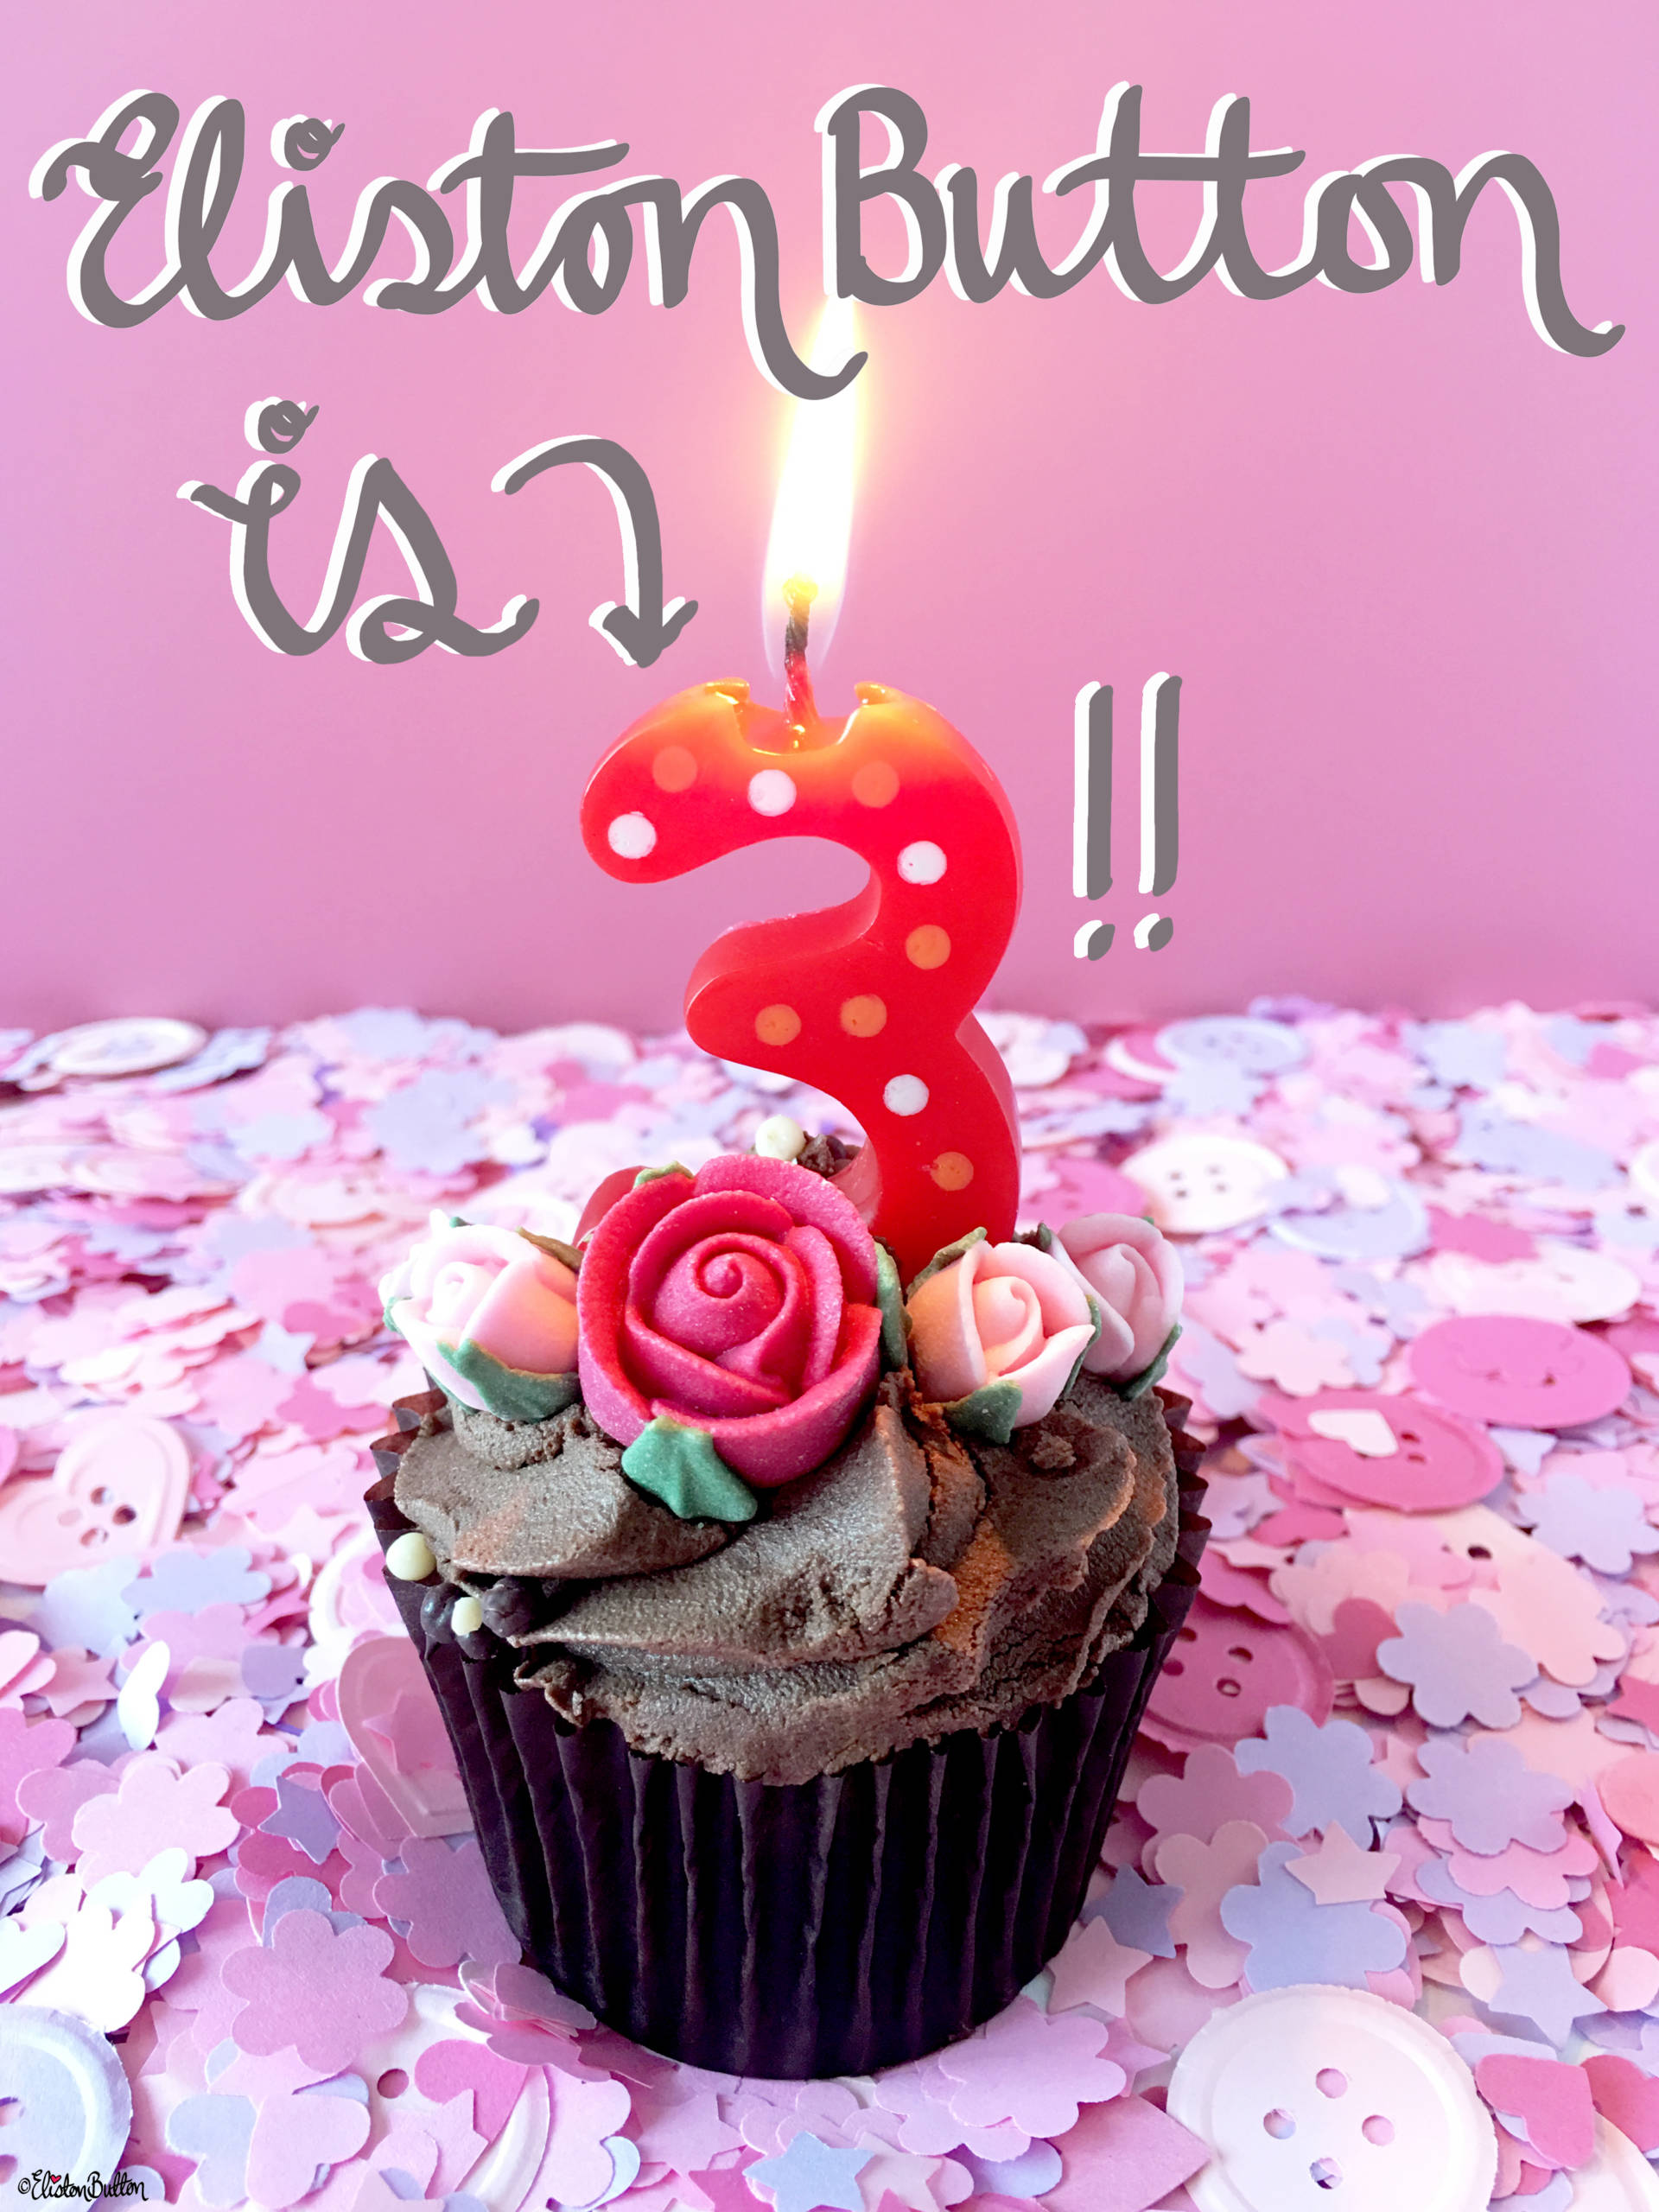 Eliston Button is 3! at www.elistonbutton.com - Eliston Button - That Crafty Kid – Art, Design, Craft & Adventure.